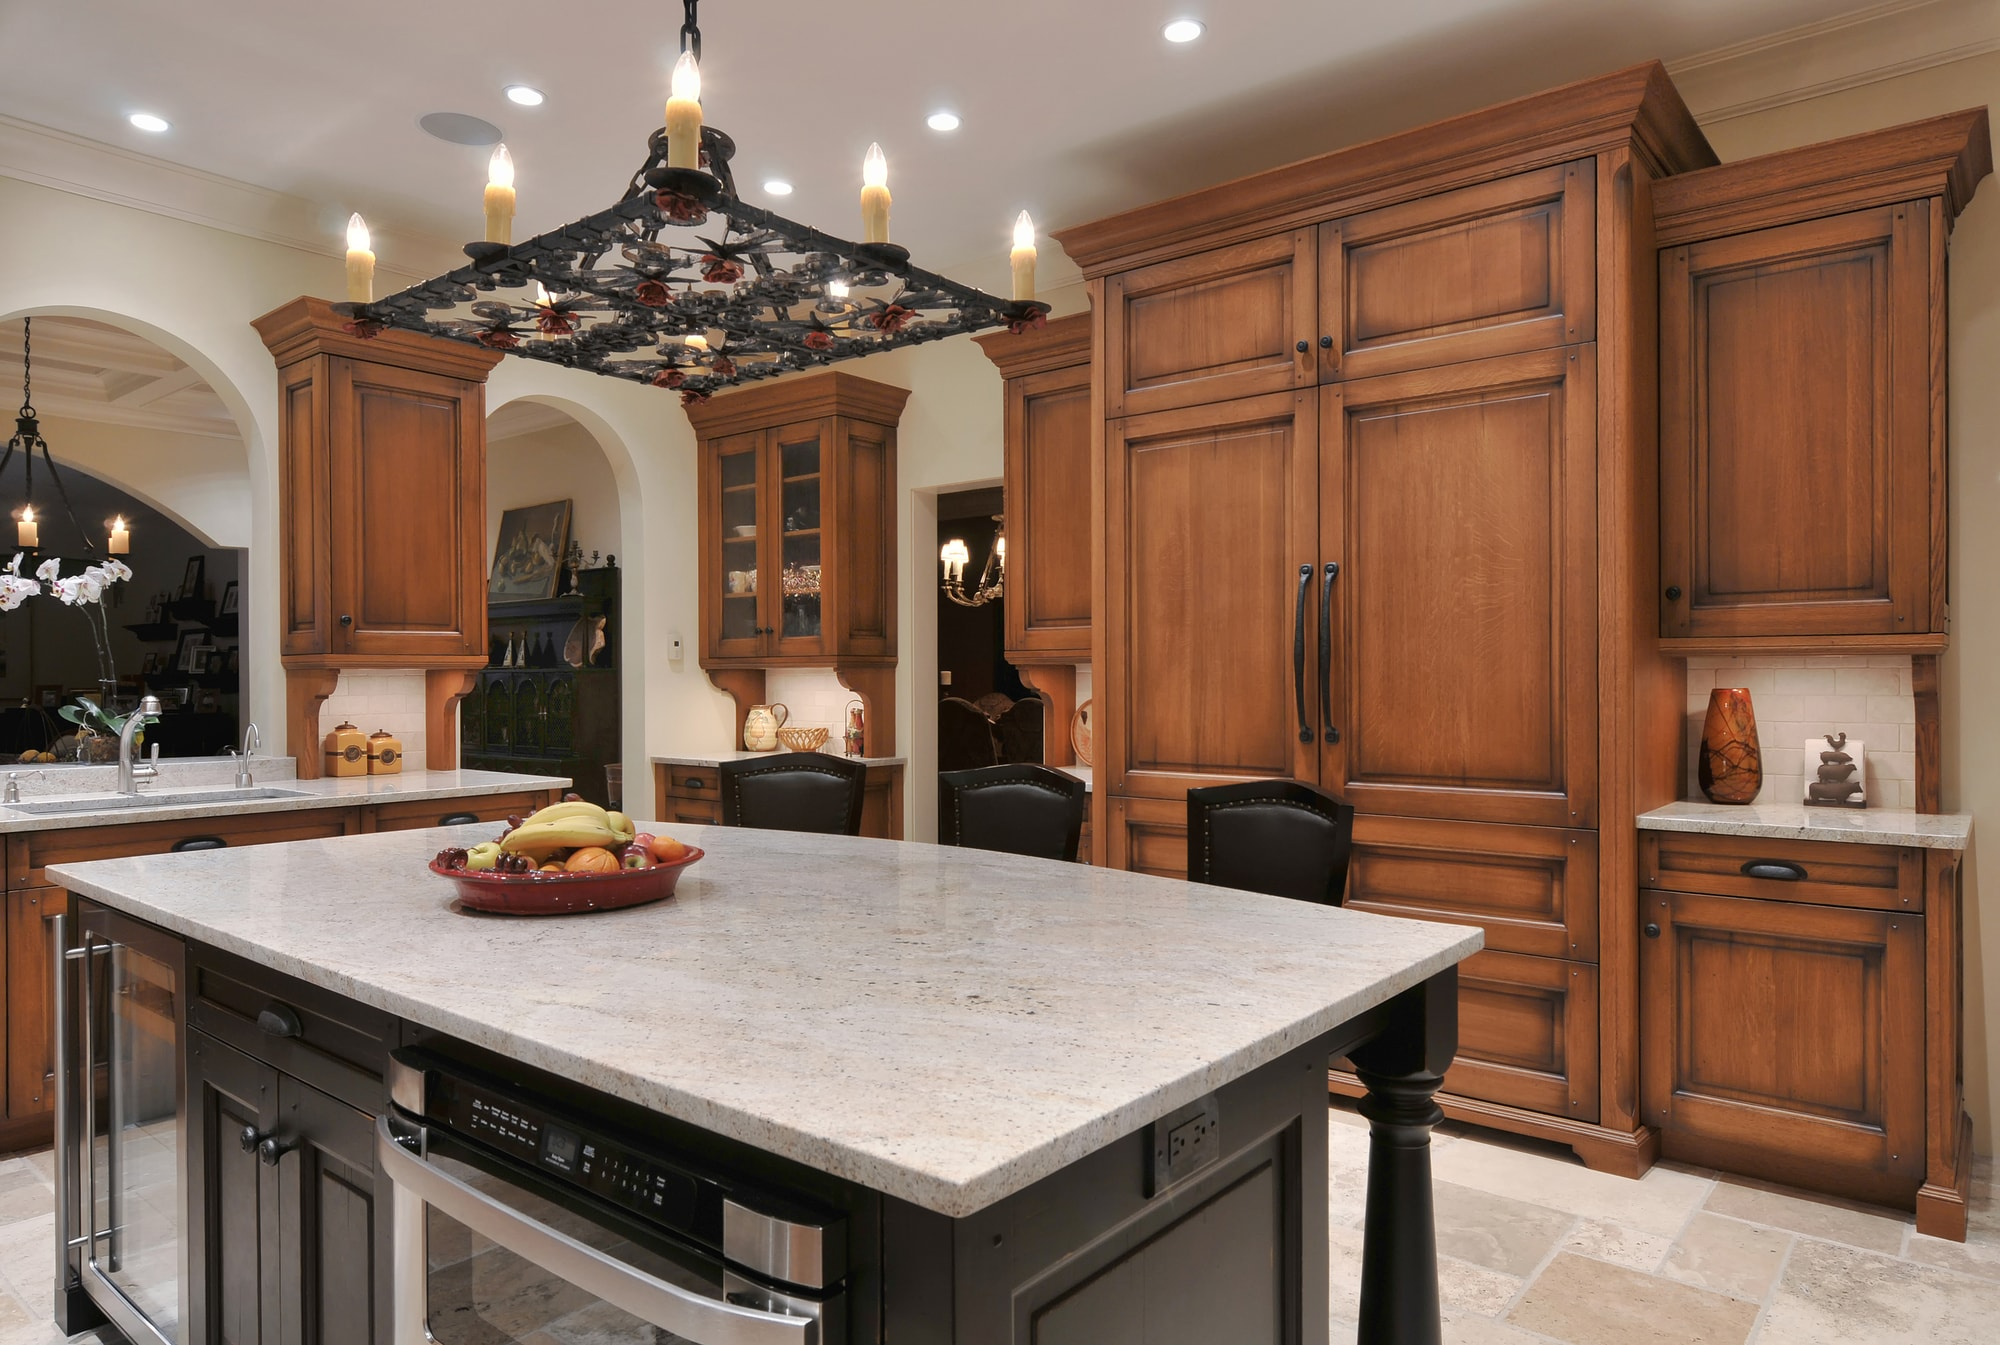 Traditional style kitchen island with hanging chandelier